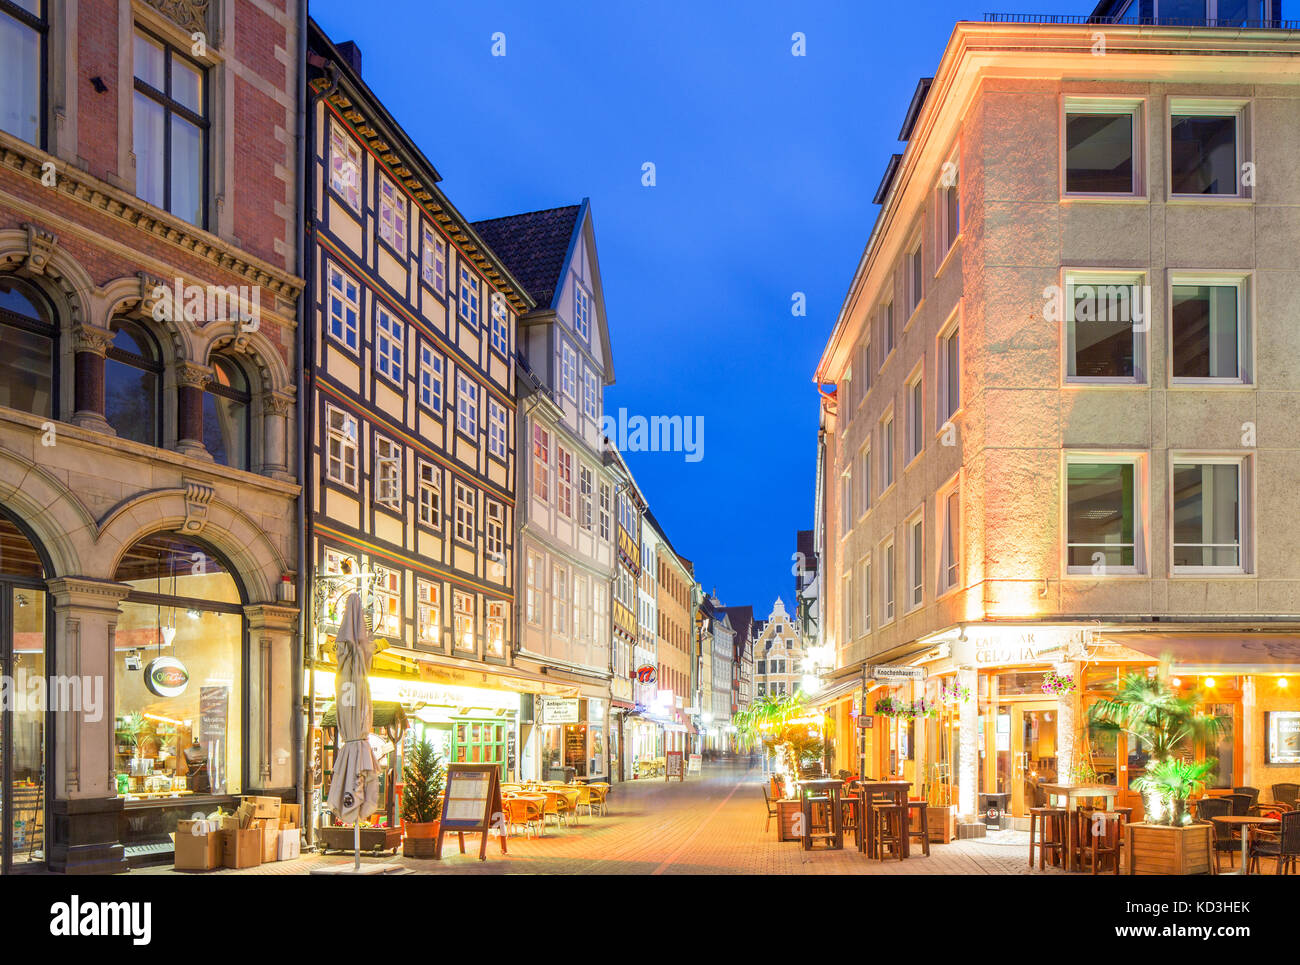 Half-timbered houses in the Kramerstraße, Old Town, evening twilight, Hanover, Lower Saxony, Germany - Stock Image